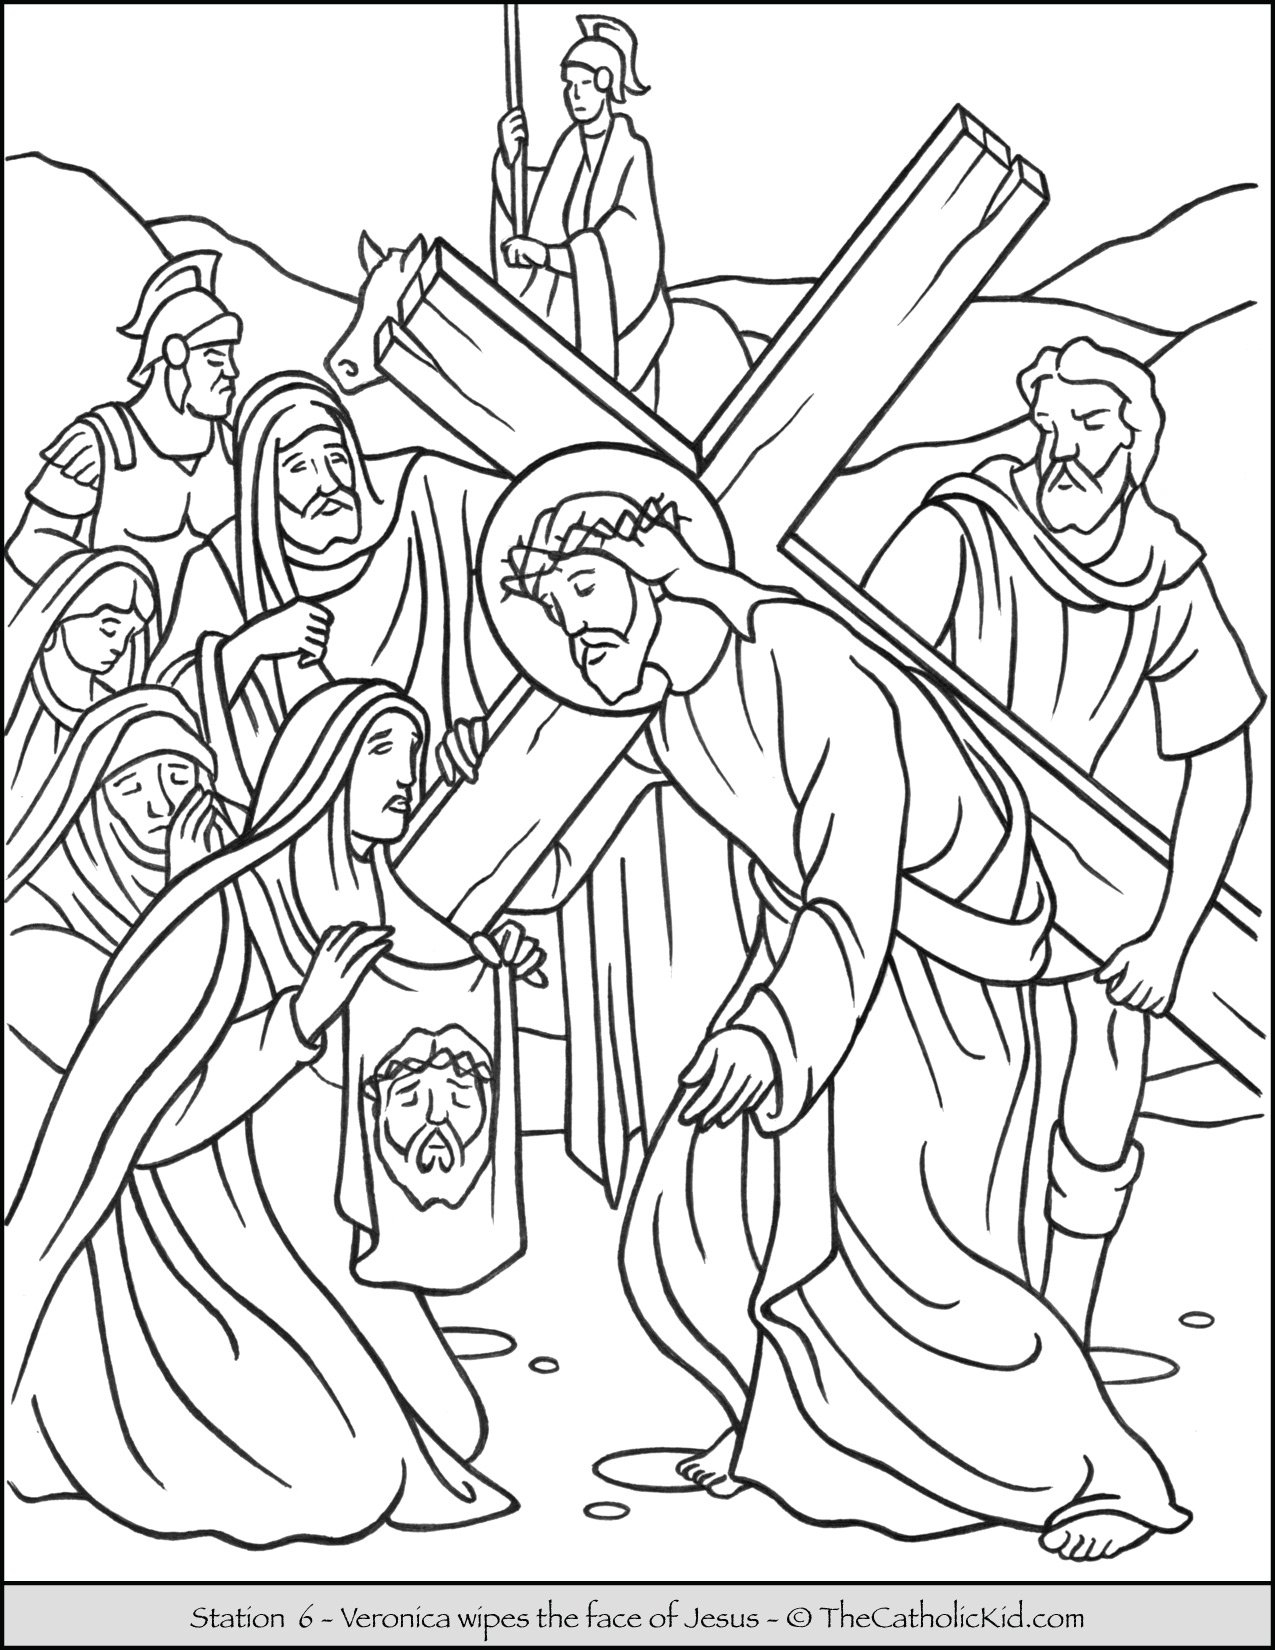 Stations of the Cross Catholic Coloring Pages for Kids 6